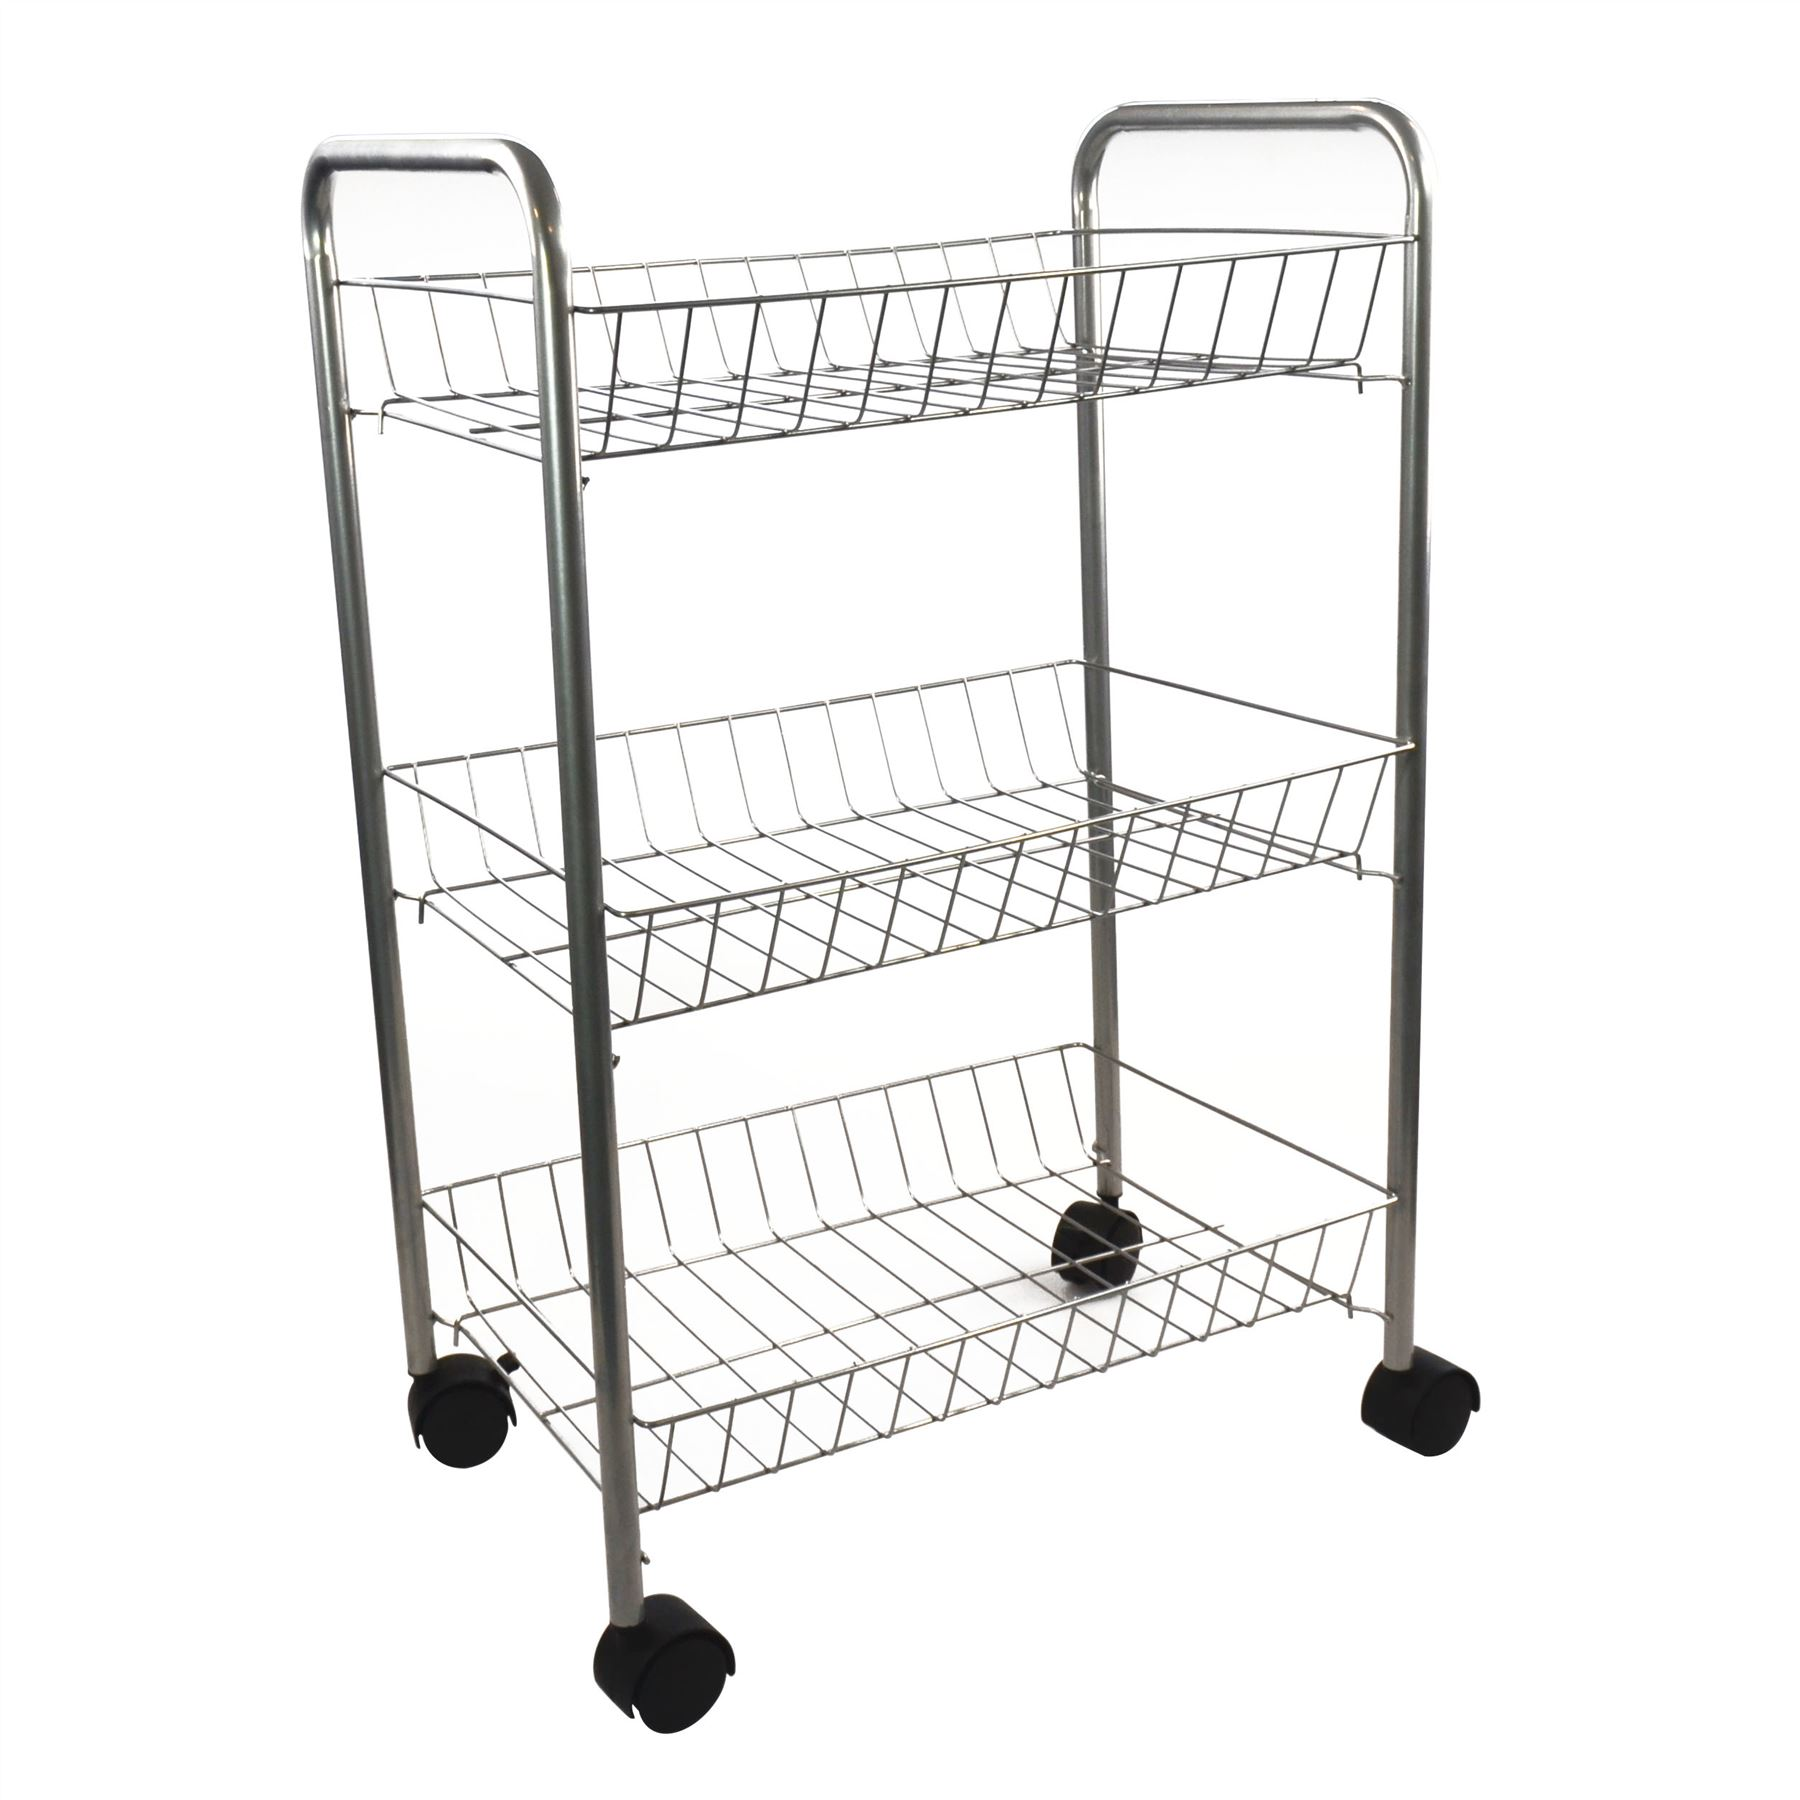 3 Tier Metal Kitchen Storage Trolley Vegetable Fruit Cart